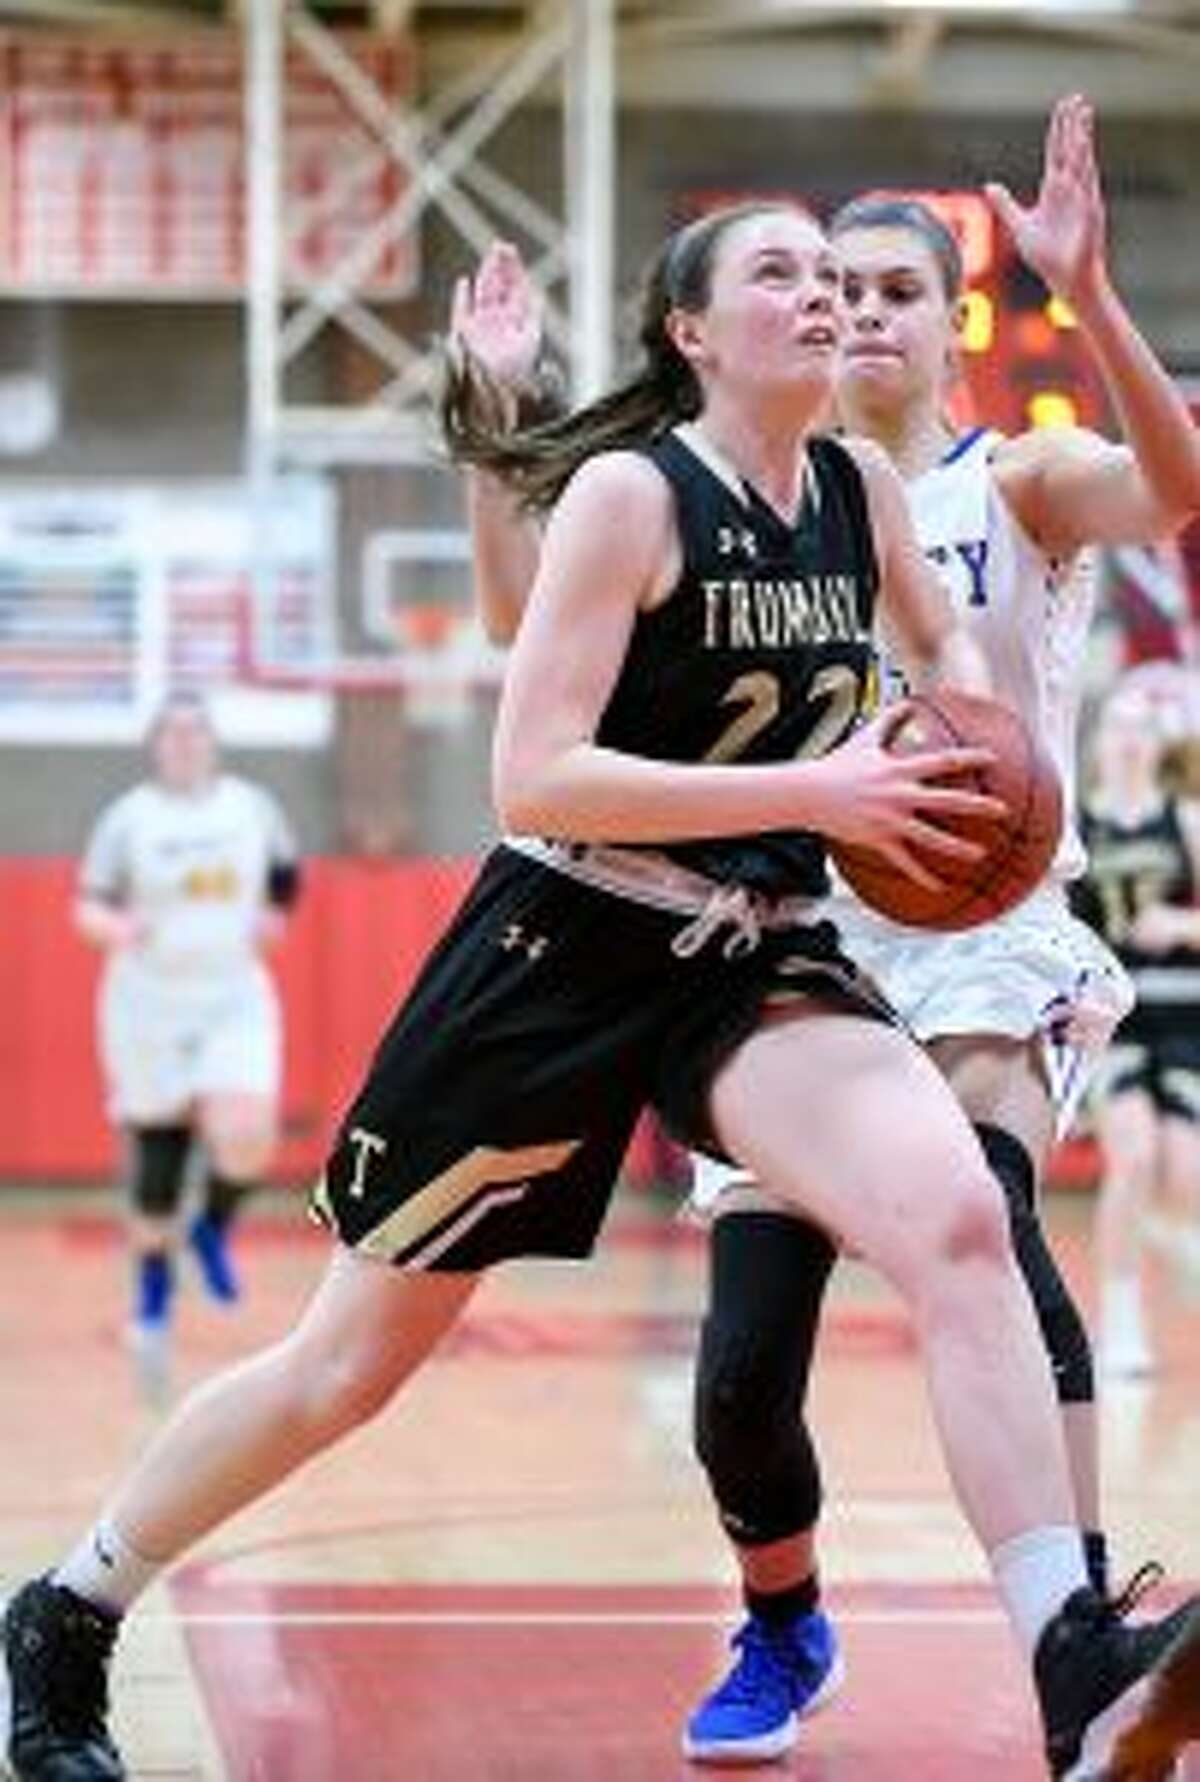 Aisling Maguire attacks the basket in the state semifinal. - David G. Whitham photos